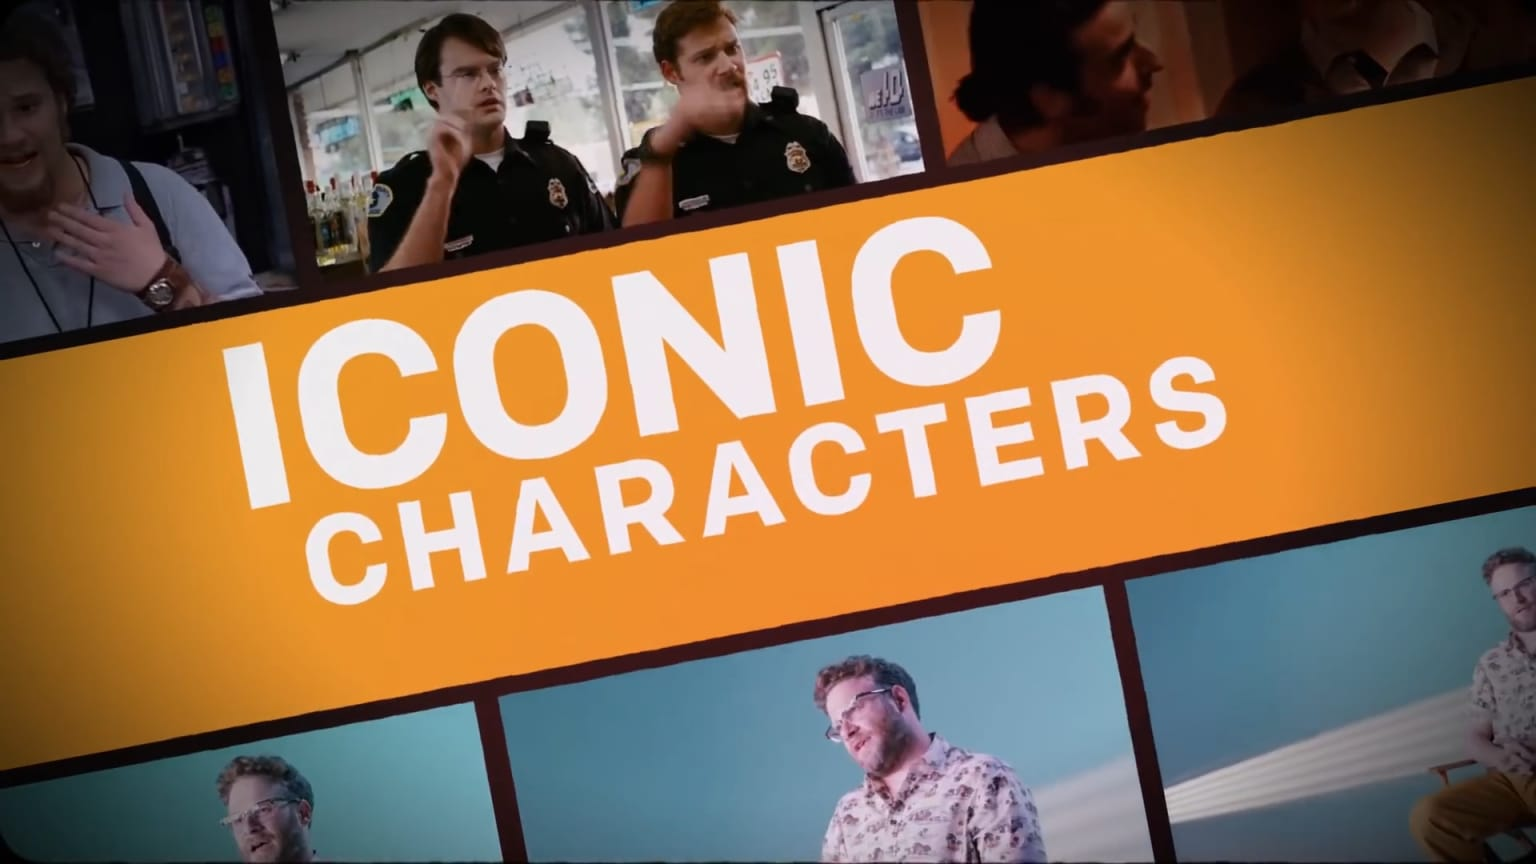 GQ Iconic Characters